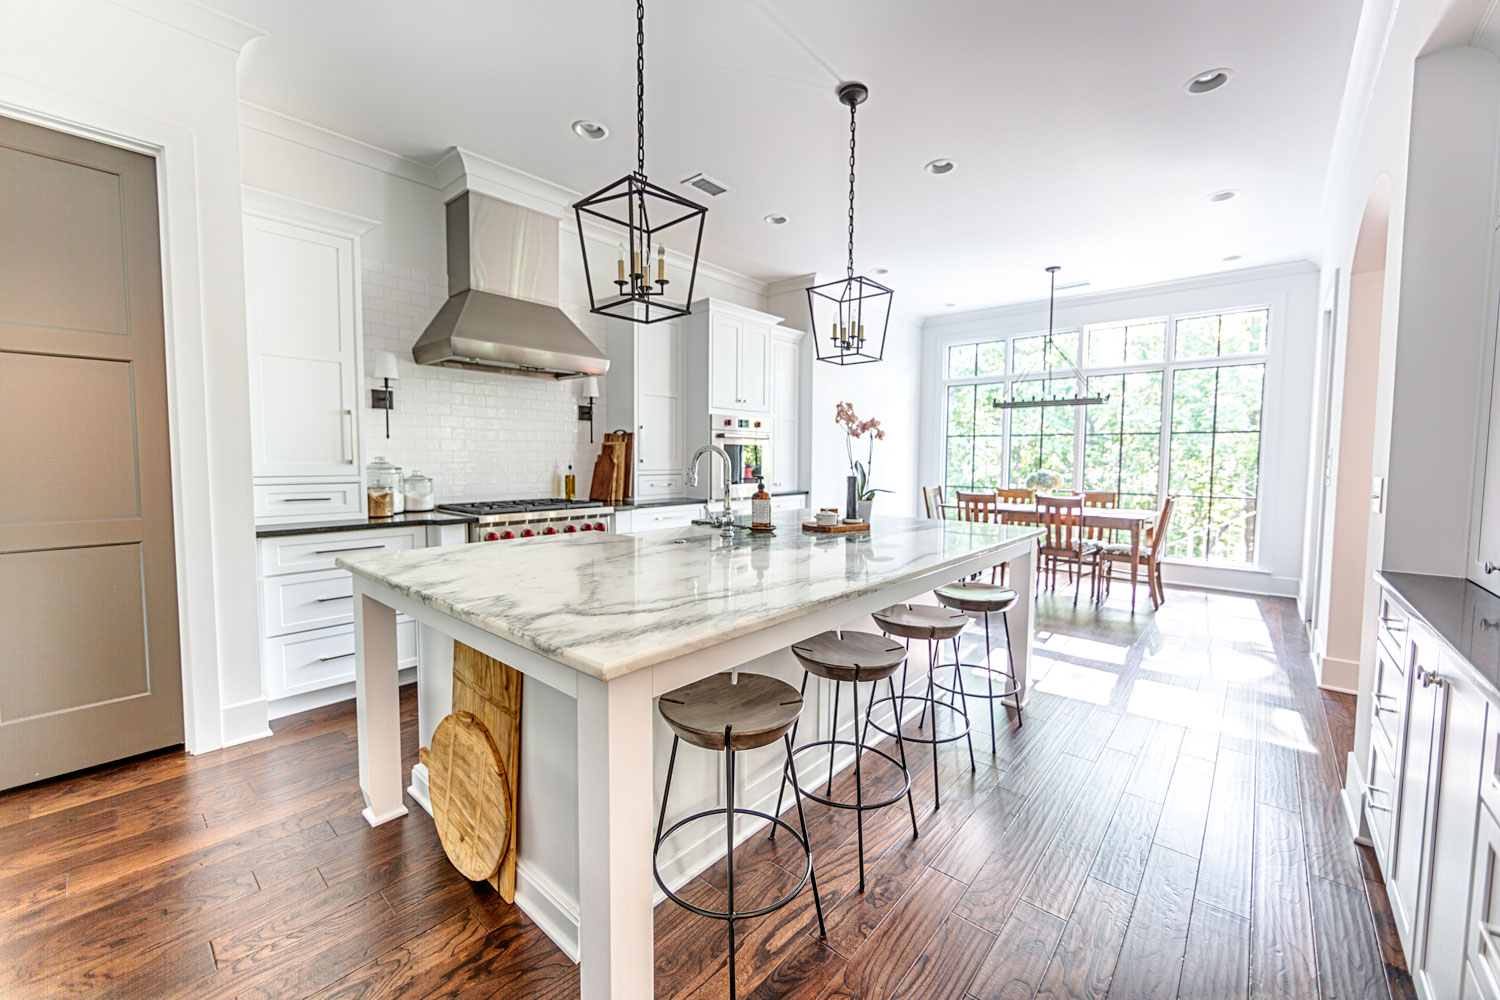 The space needed for a kitchen island when remodeling